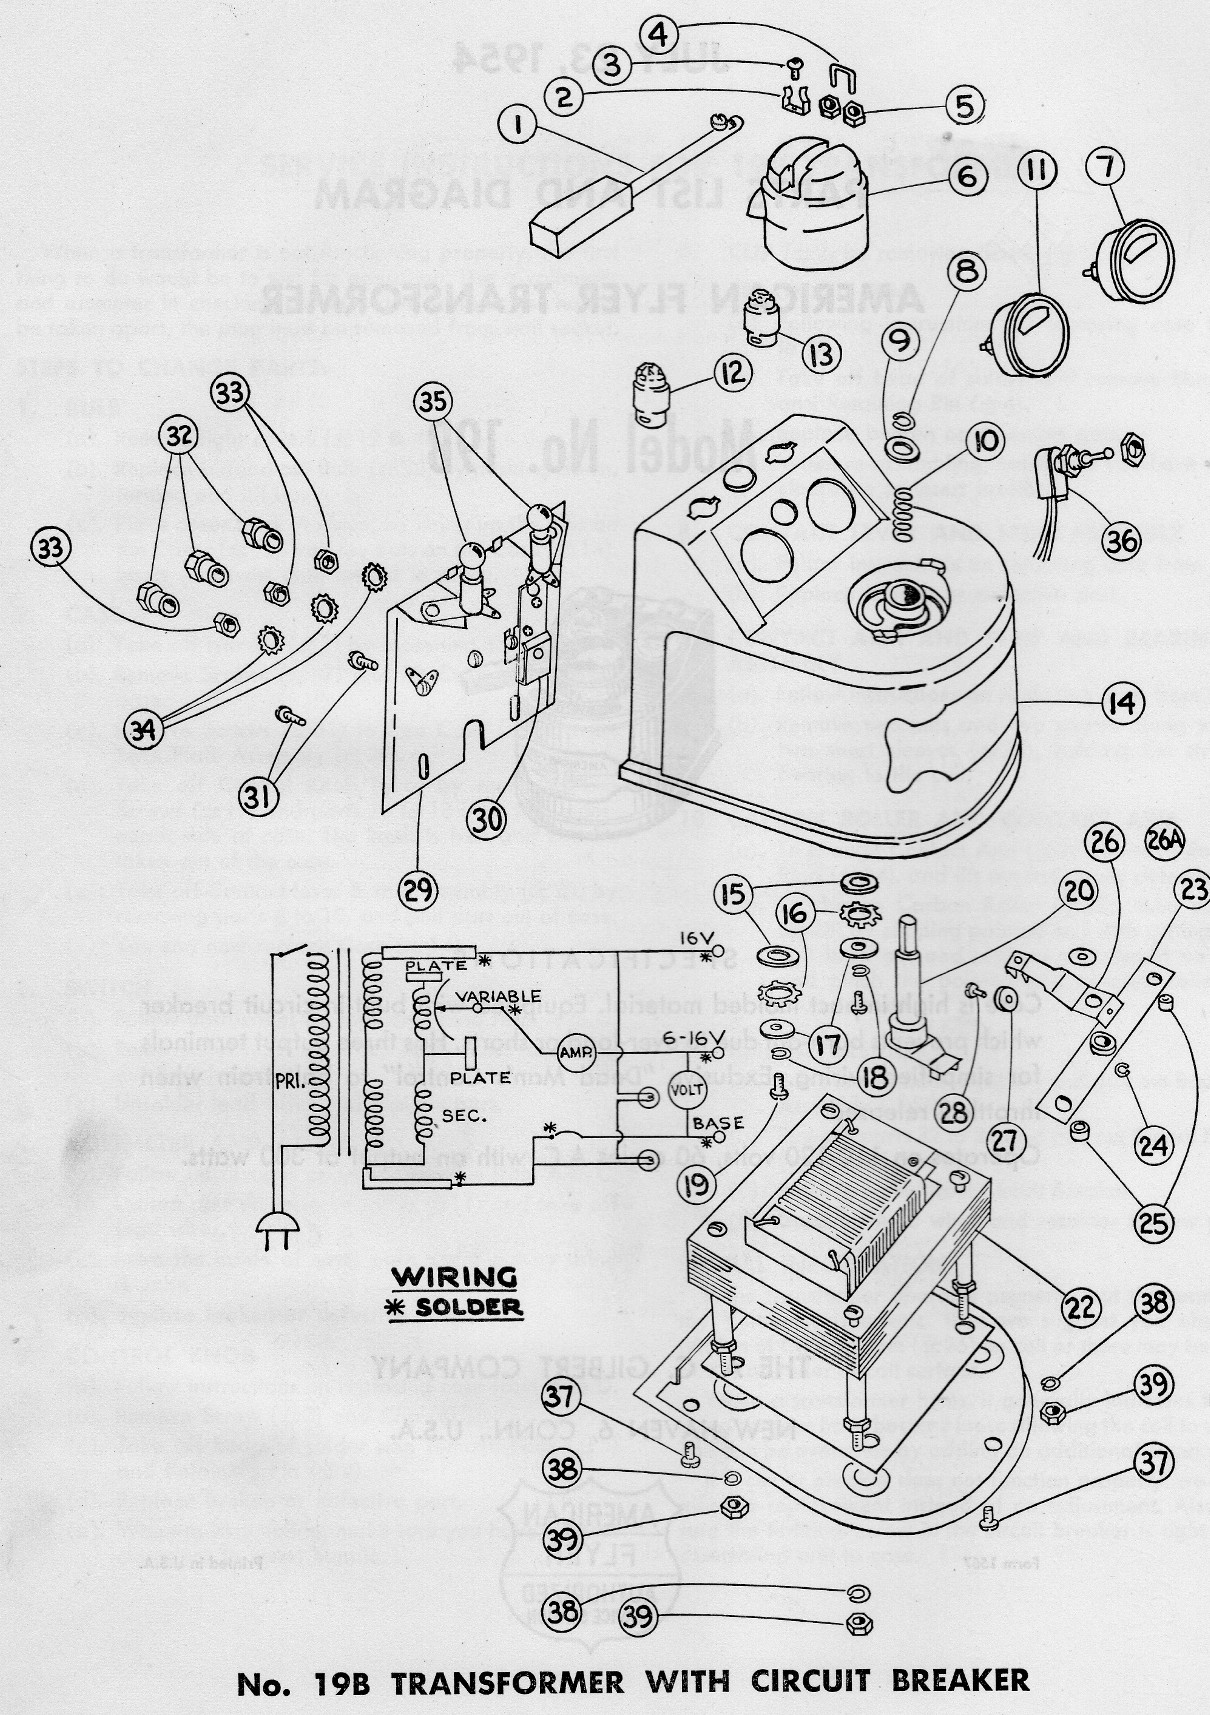 American Flyer Transformer 19b Parts List Diagram Traindr Circuit With And Page 2